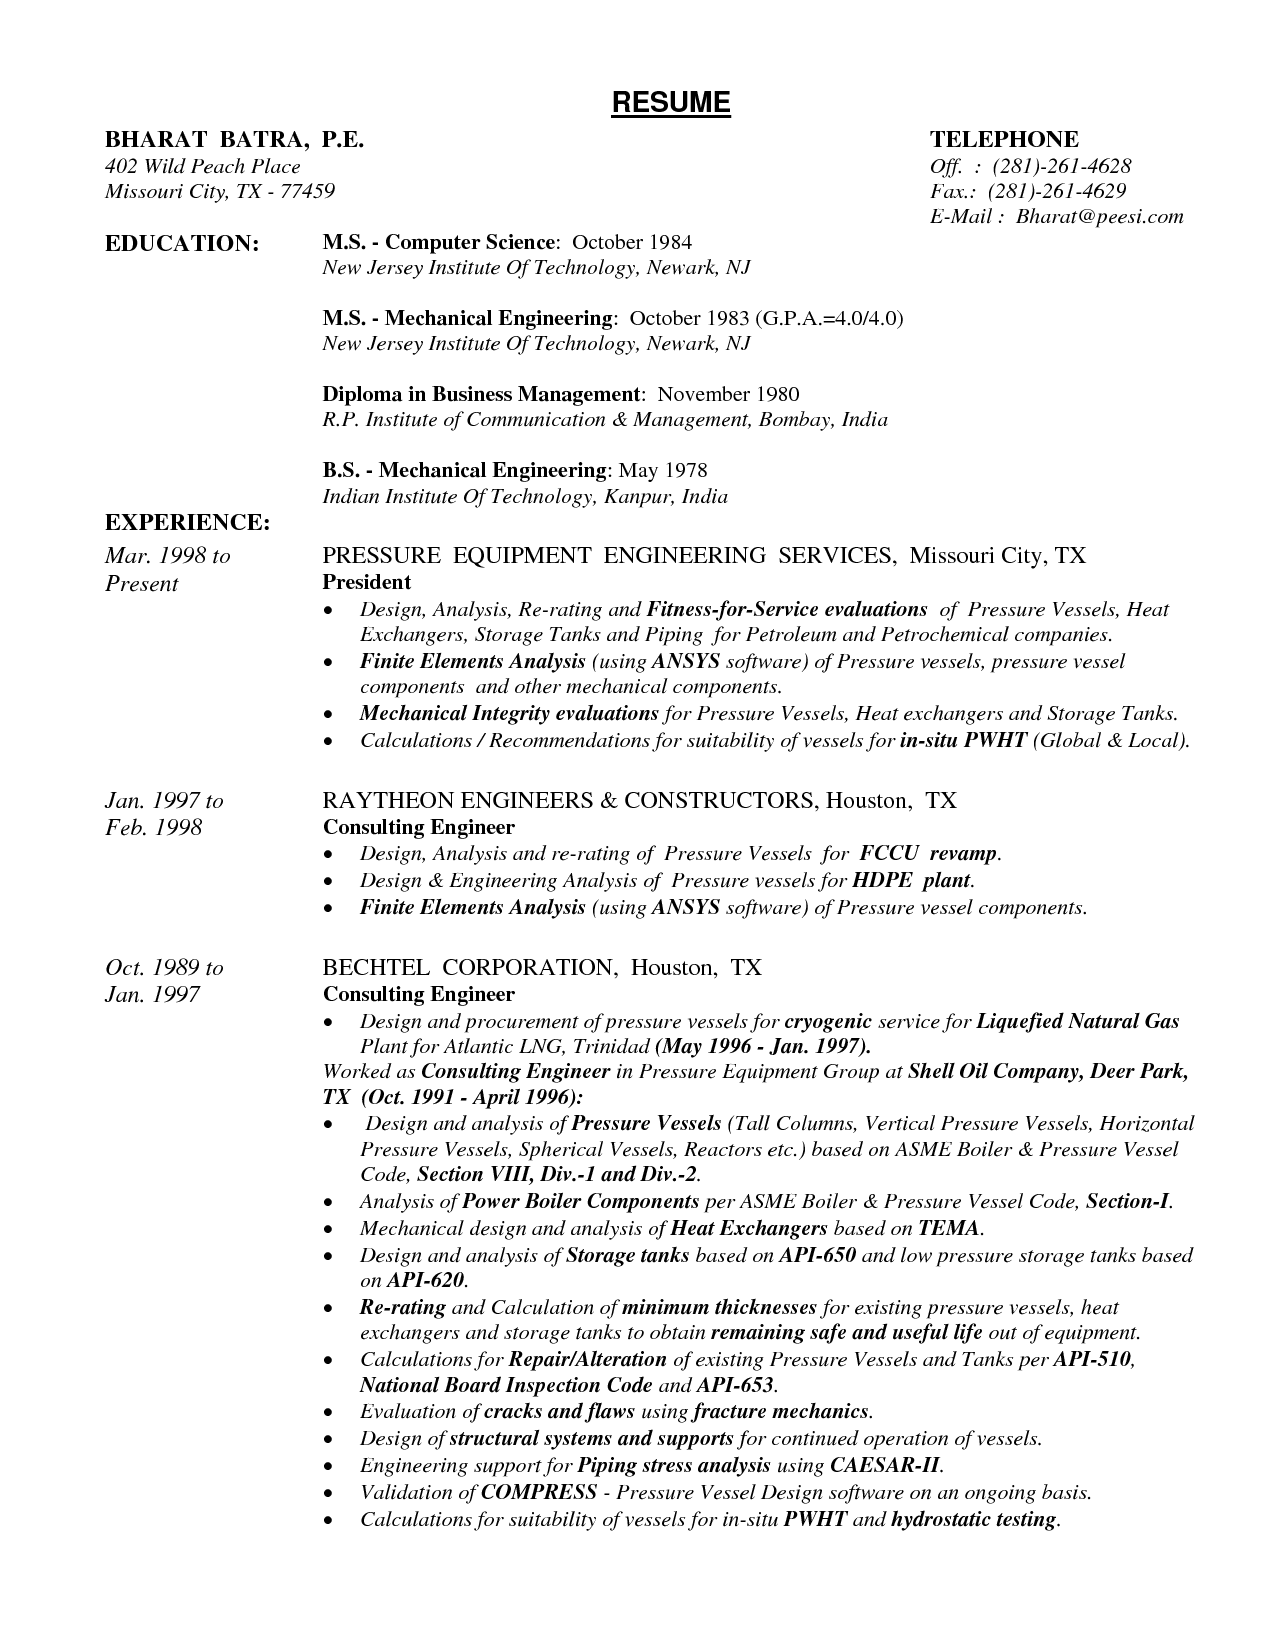 Sample Resume Pdf Mechanical Designer Resume Mechanical Engineer Technician  Jobs